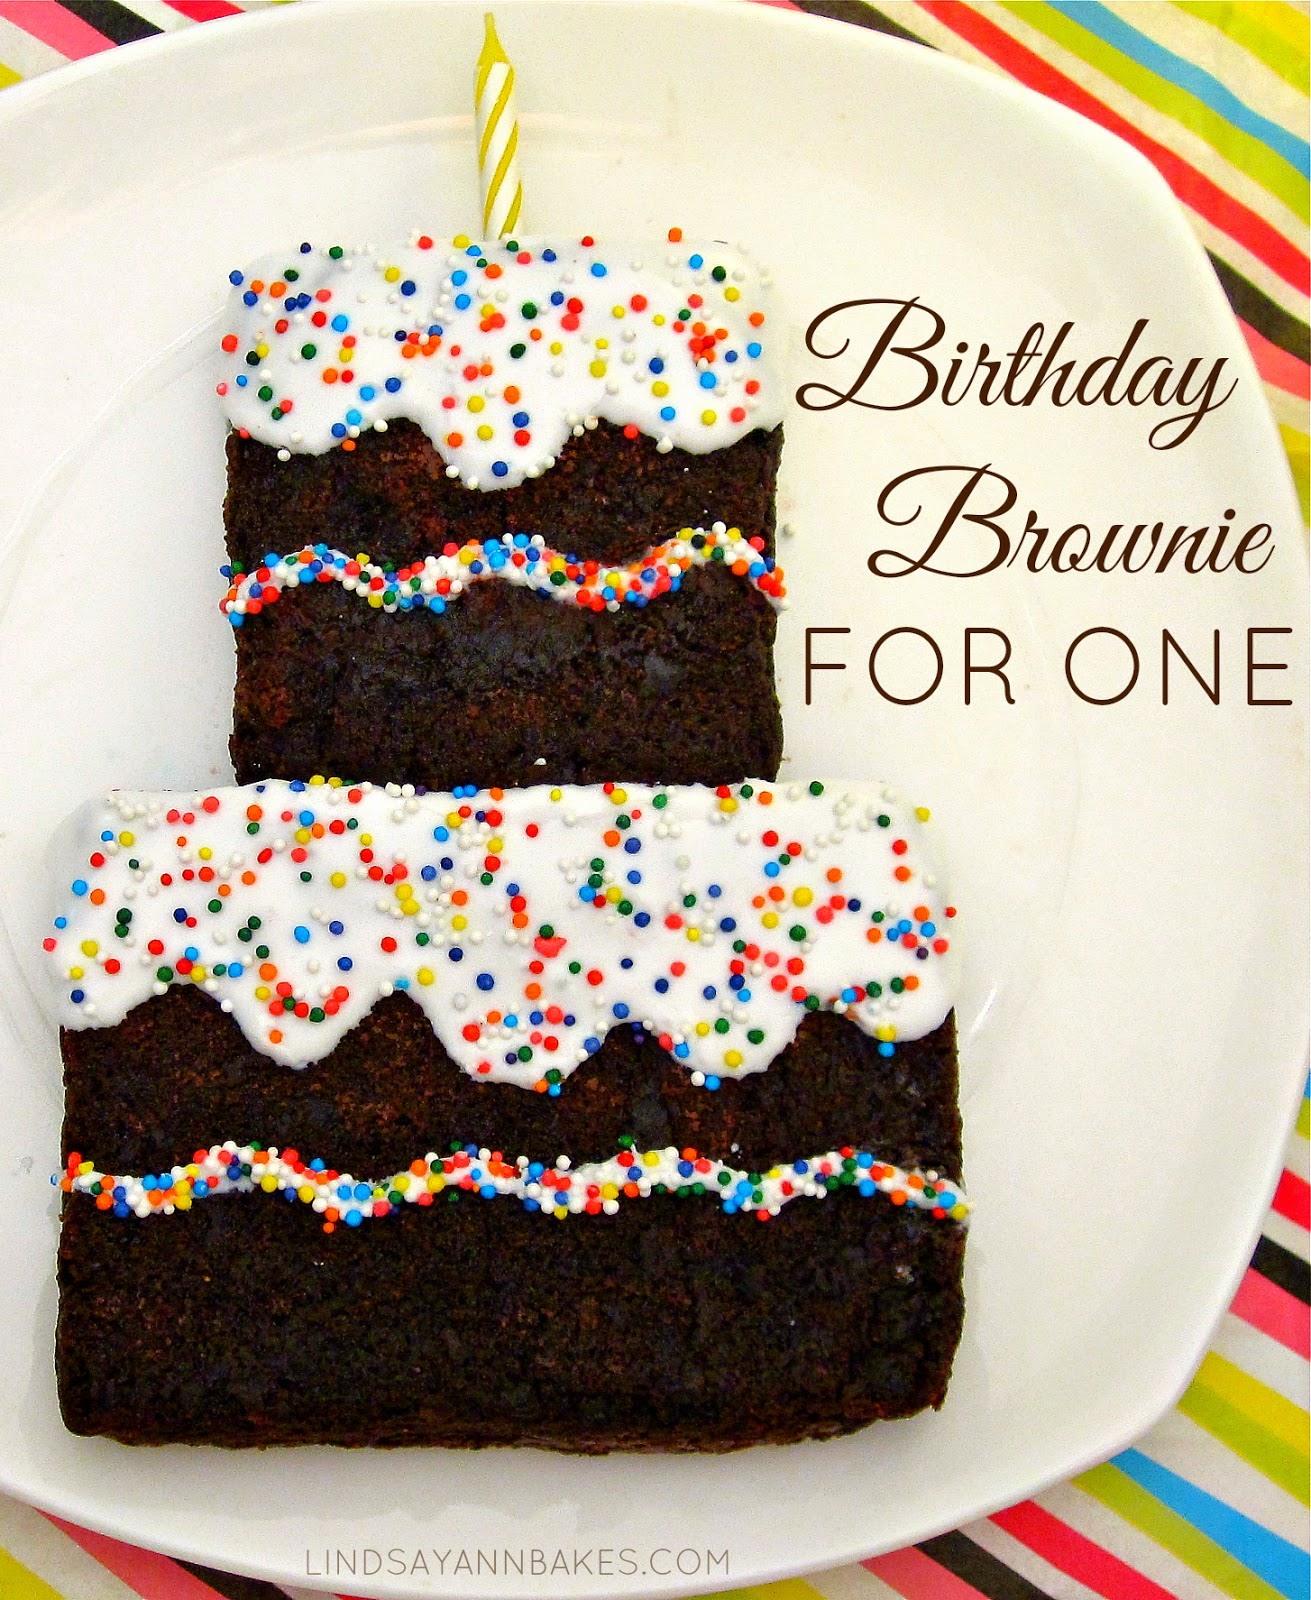 Single Serving Birthday Brownie For One Lindsay Ann Bakes